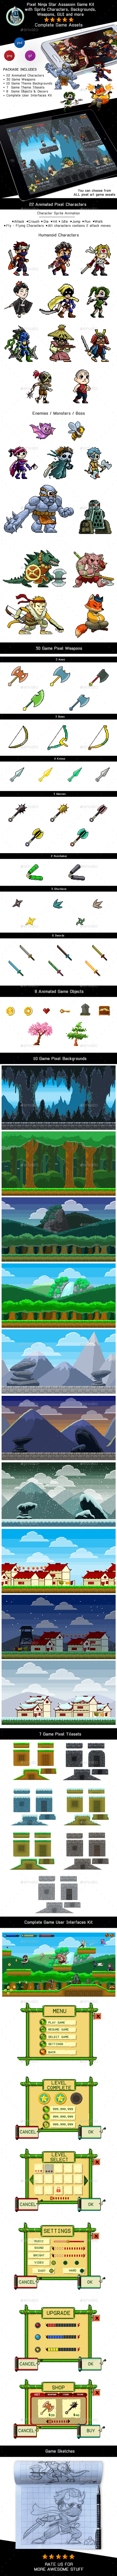 GraphicRiver Pixel Ninja Star Assassin Game Kit Sprites Backgrounds and Weapons 20371559